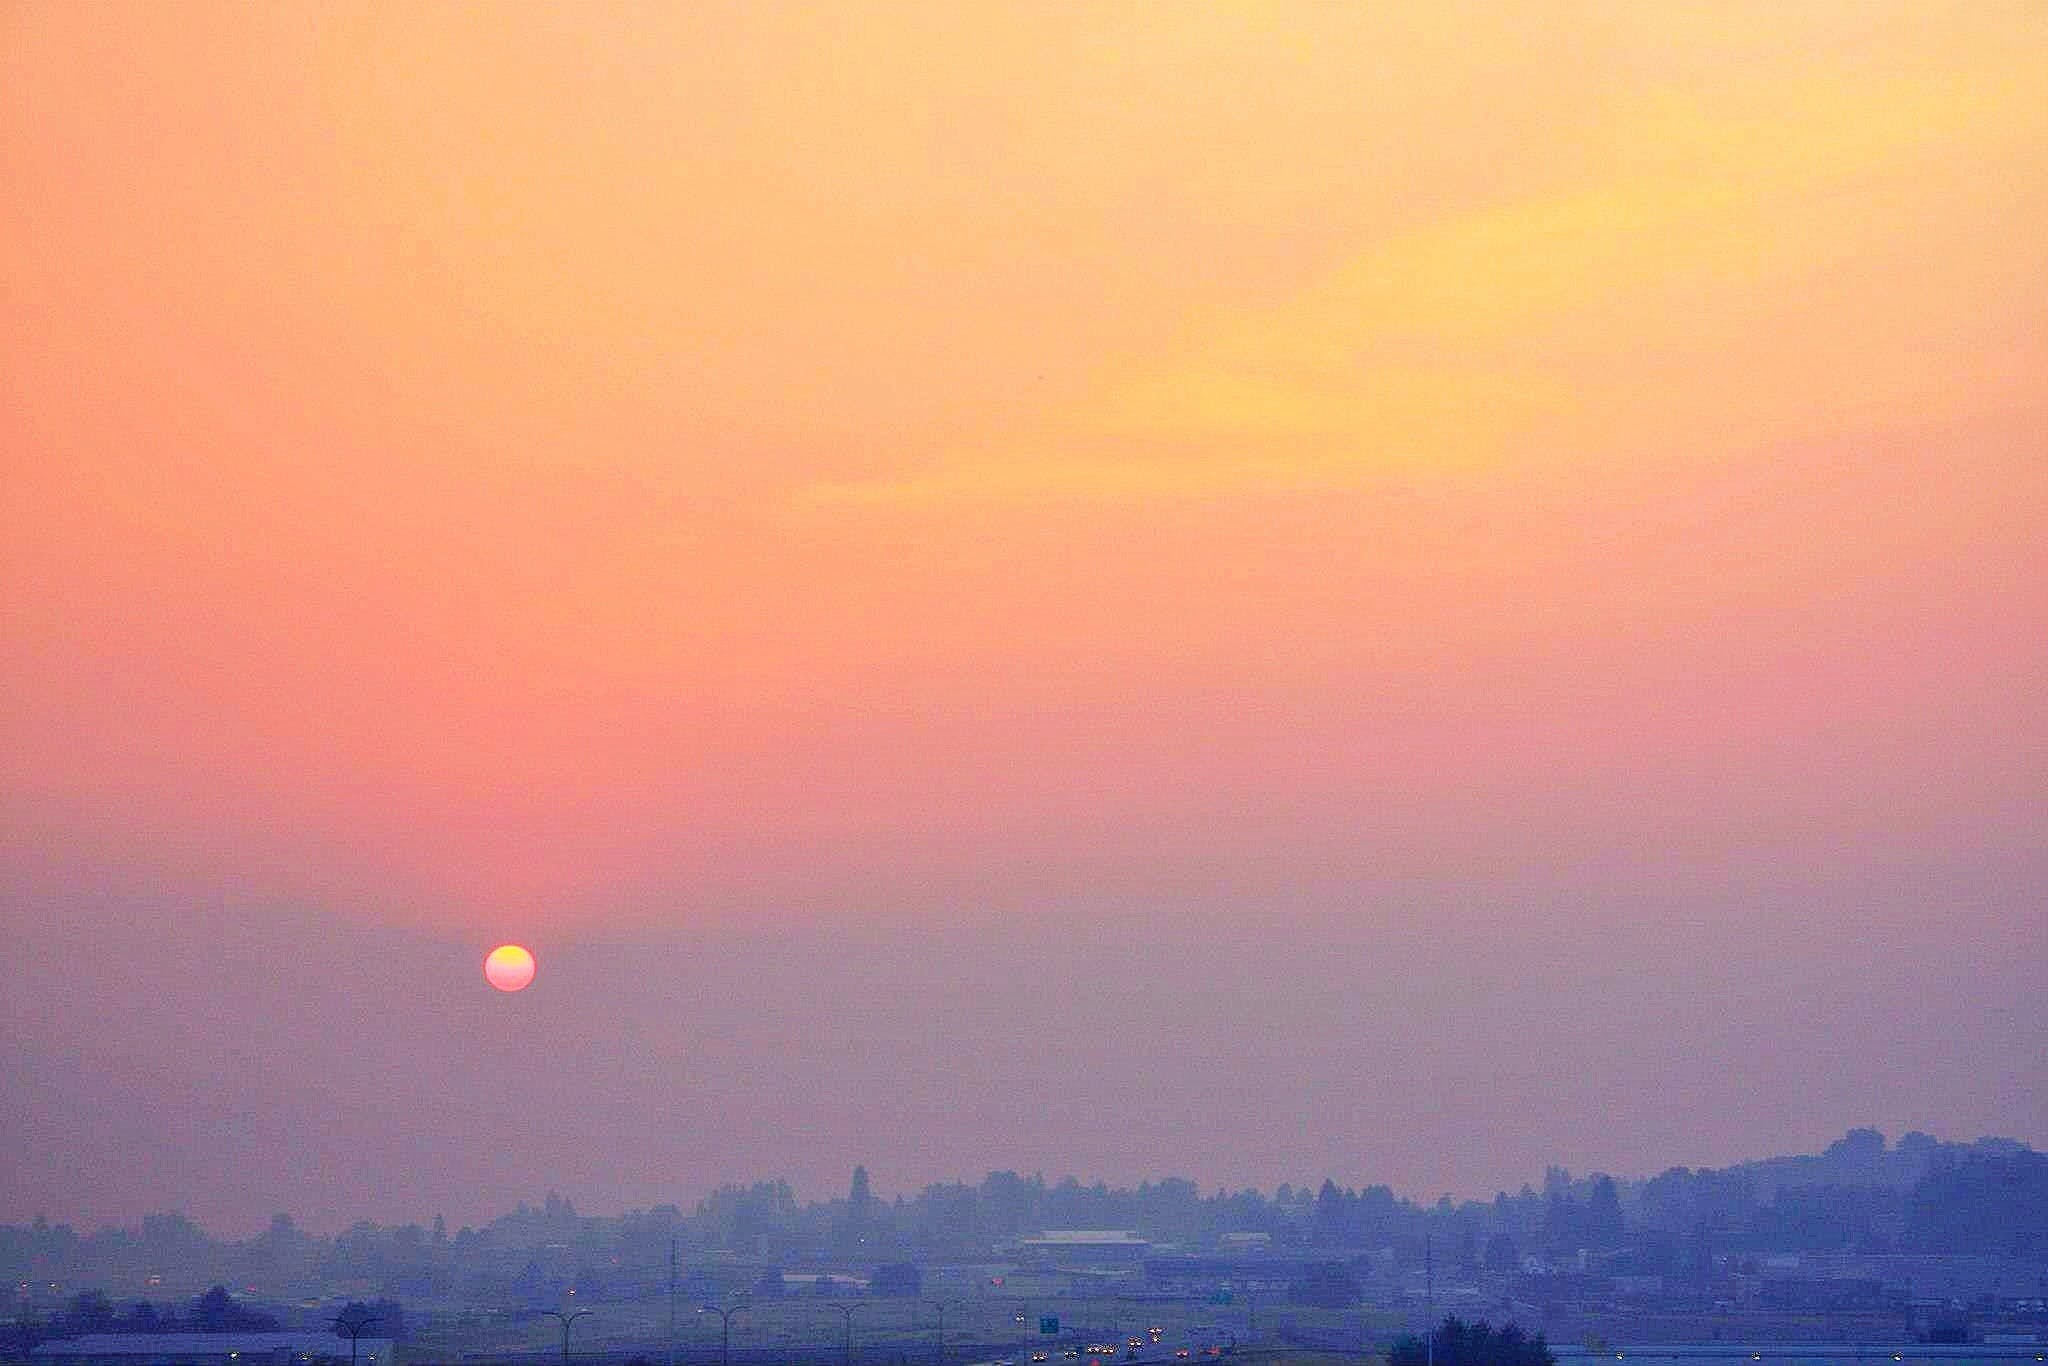 Free stock photo of forest fire, landscape, red sun, smoke